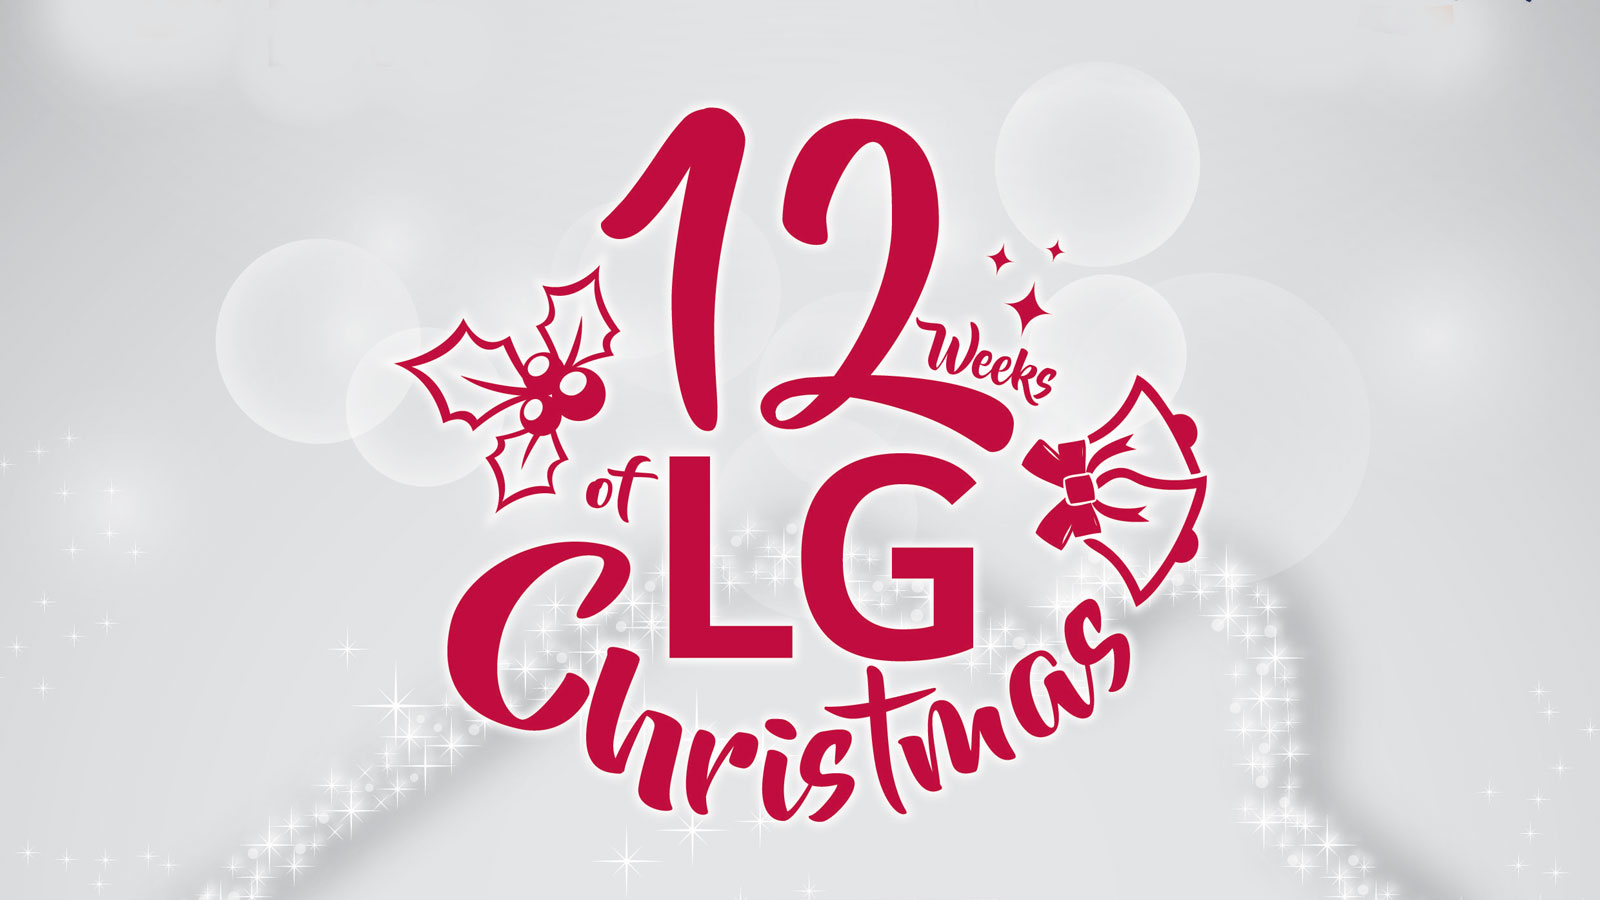 Start counting down to the 12 Weeks of LG Christmas